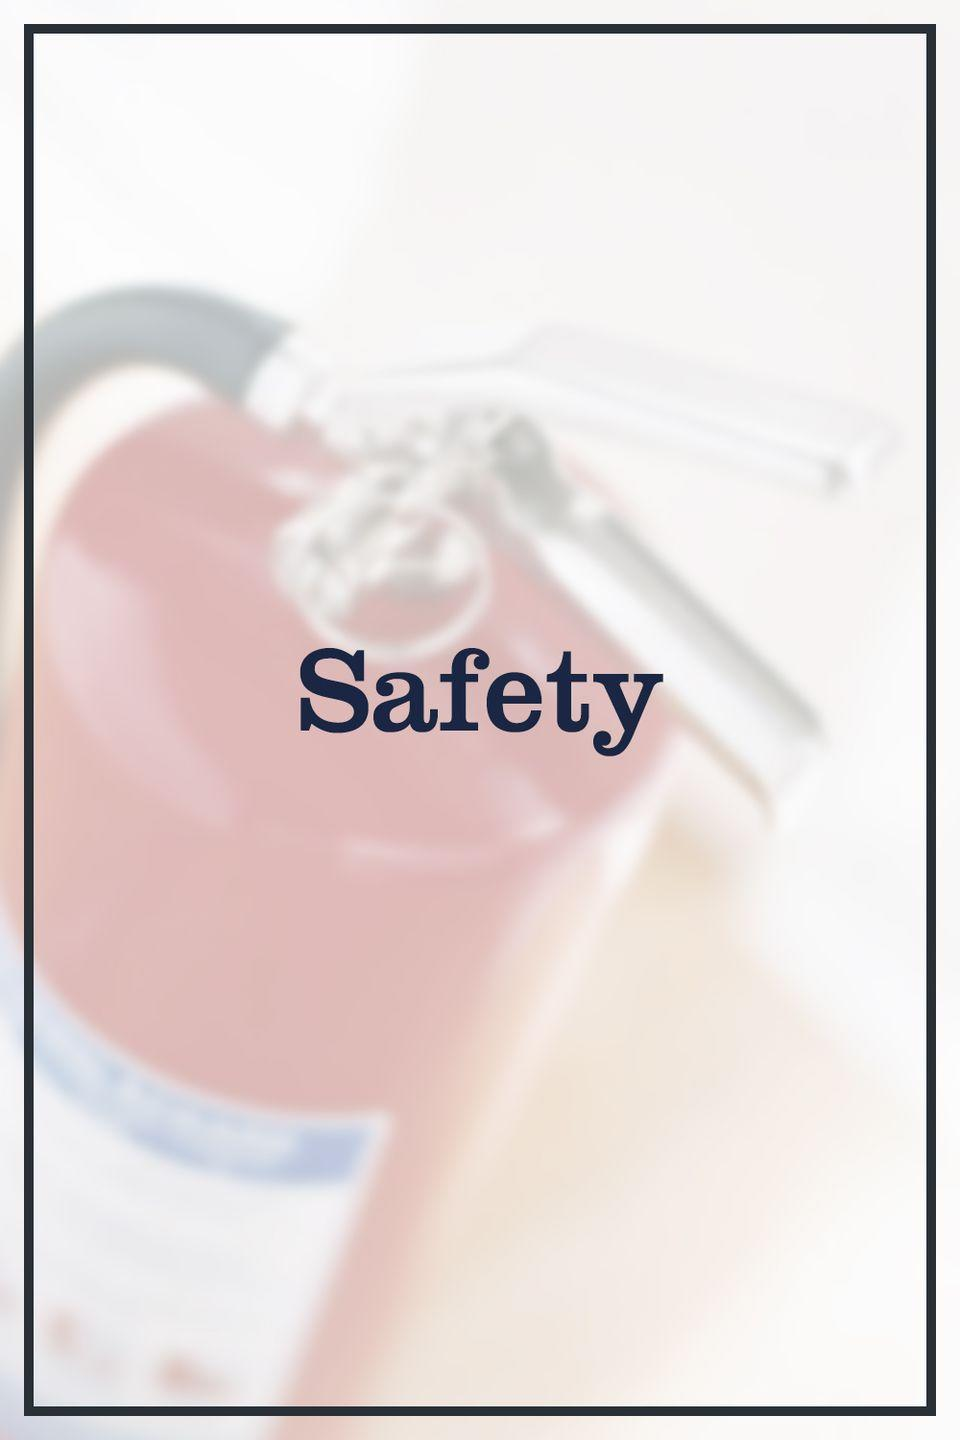 <p>For the health and safety of your family, it's important to keep the following items in your home.</p>